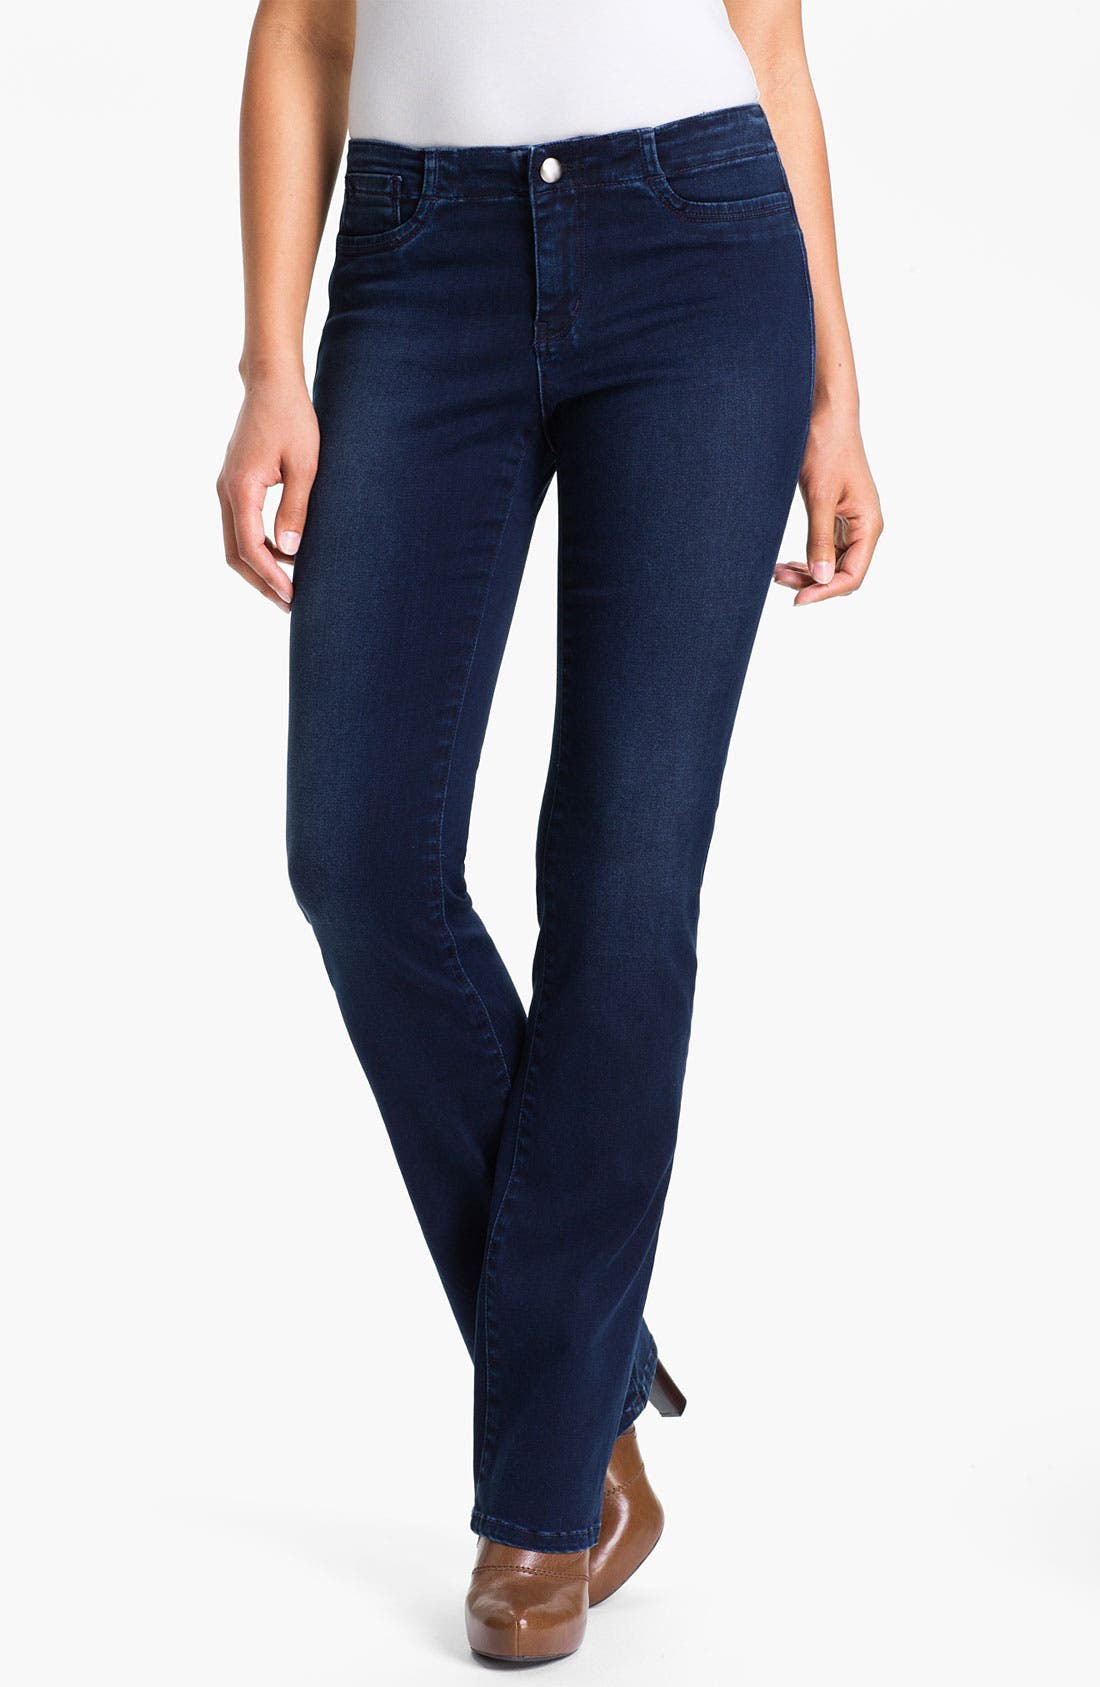 Alternate Image 1 Selected - Christopher Blue 'Isabella' Bootcut Stretch Jeans